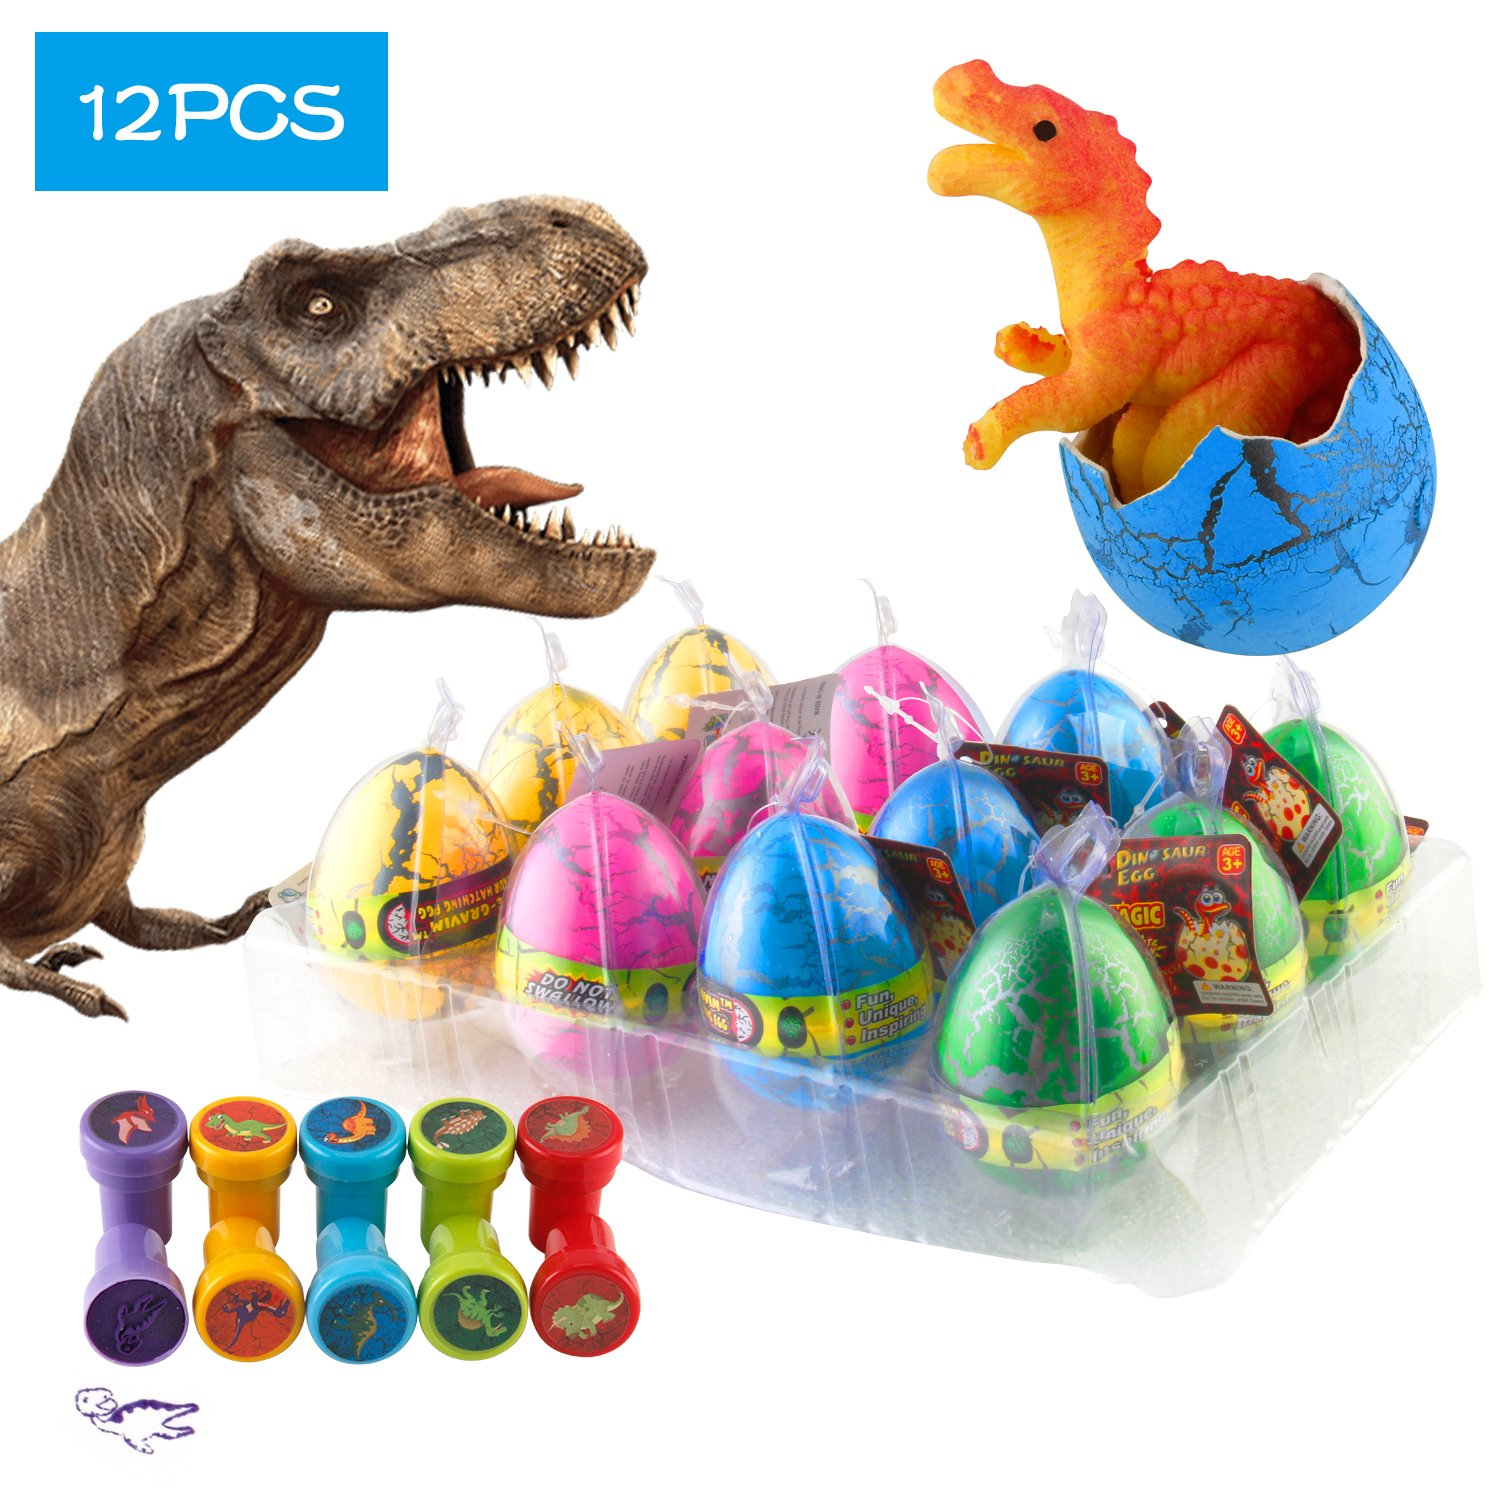 Kictero 12 Pcs Dinosaur Eggs with Bonus10 Pcs Dinosaur Stamps, Crack Easter Dinosaur Eggs That Hatch in Water, Grow Eggs with Dinosaur Figures Inside Toy for Boys / Girls, Birthday Party Favors